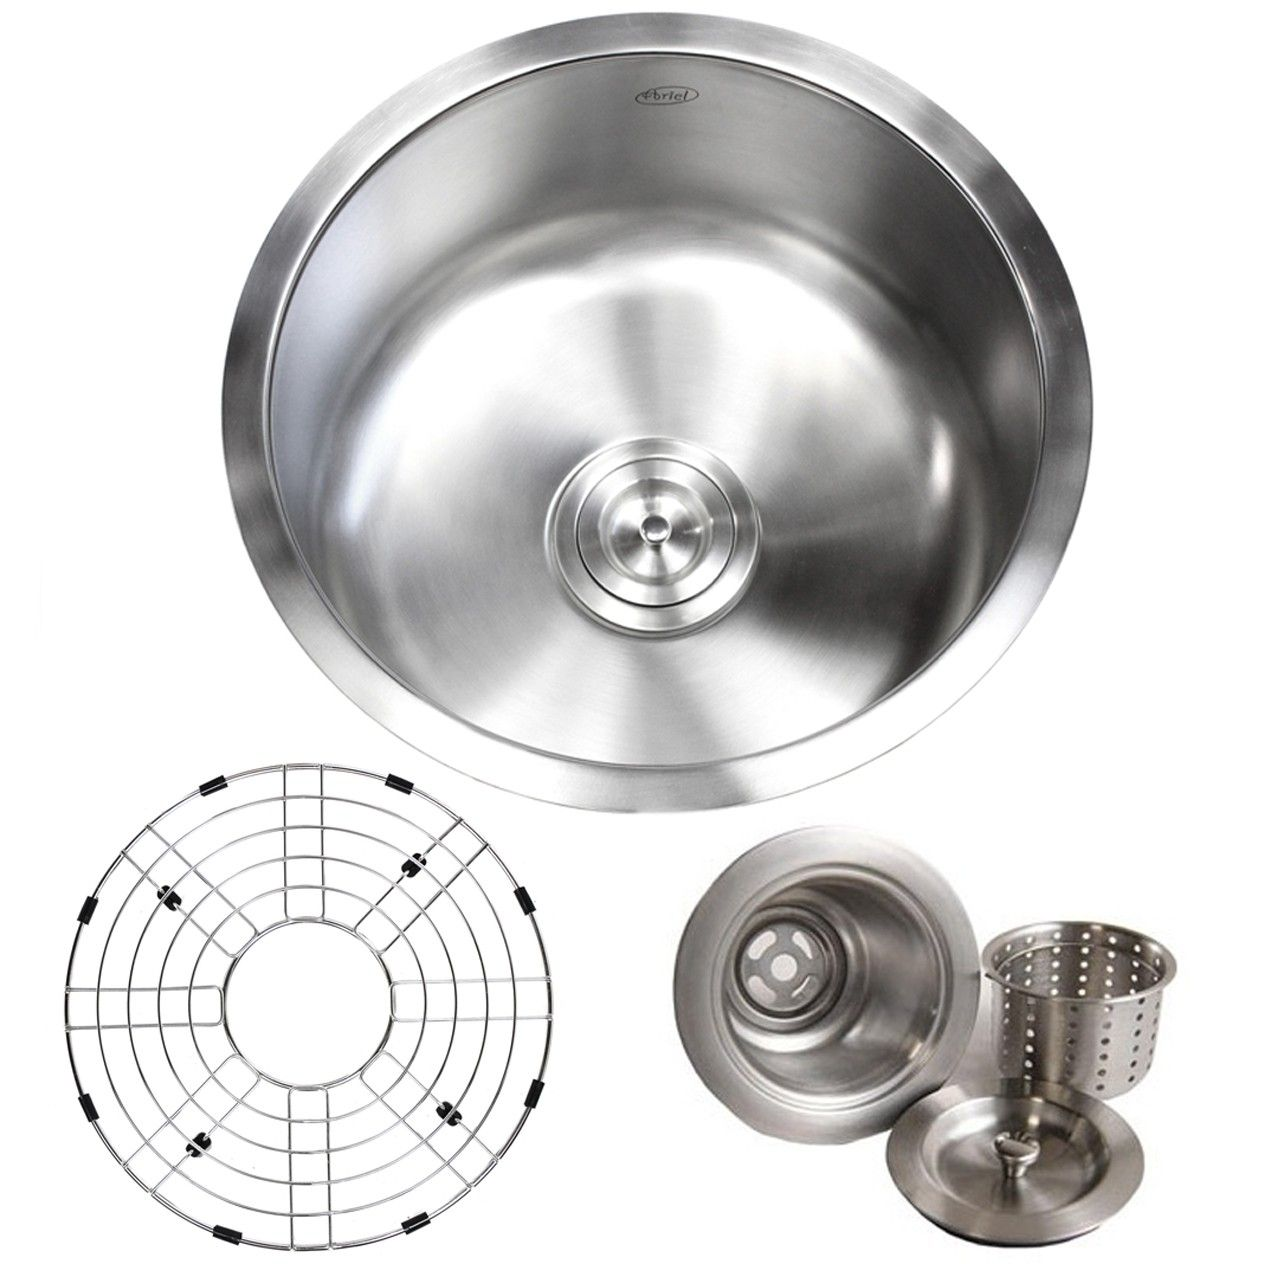 17 Inch Stainless Steel Undermount Single Bowl Kitchen Bar Prep Sink Round 16 Gauge Free Accessories Stainless Steel Undermount Prep Sink Sink